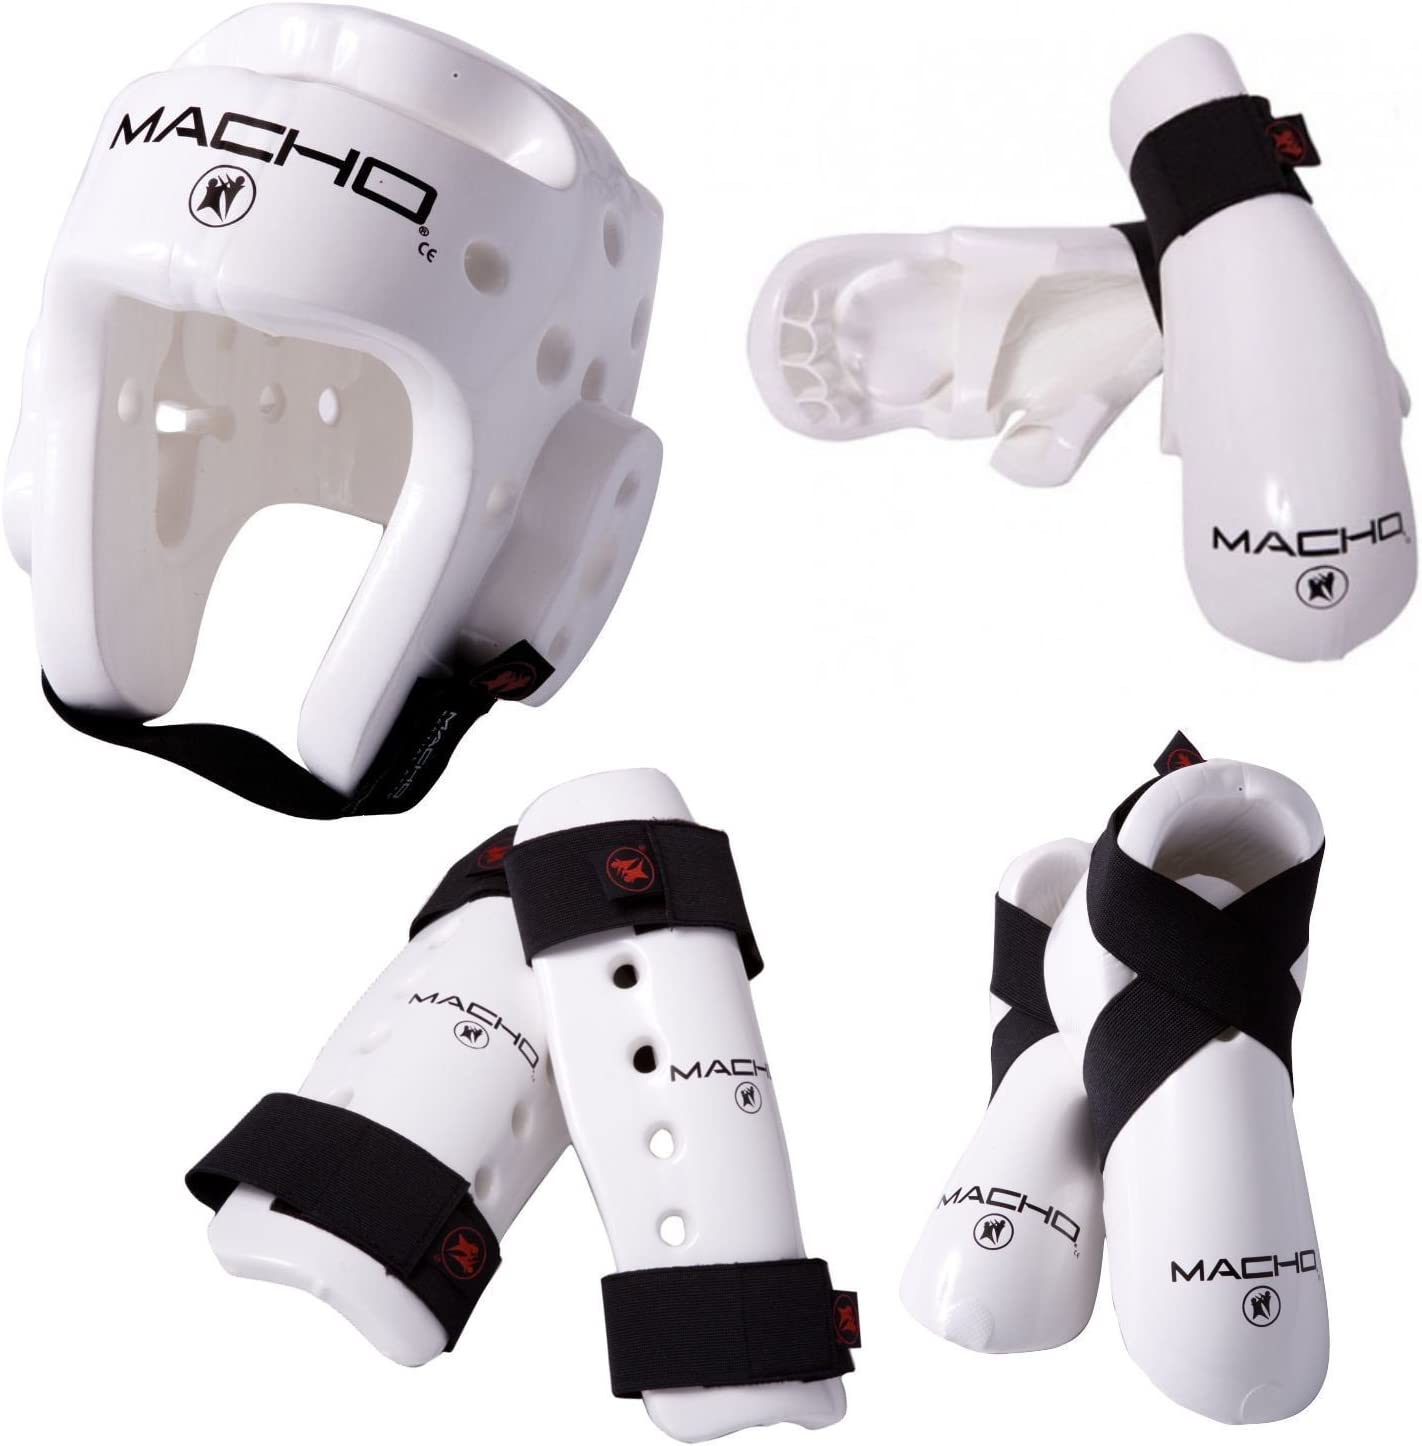 Macho Dyna WHITE 7 piece Sparring Gear Set Any Size with shin